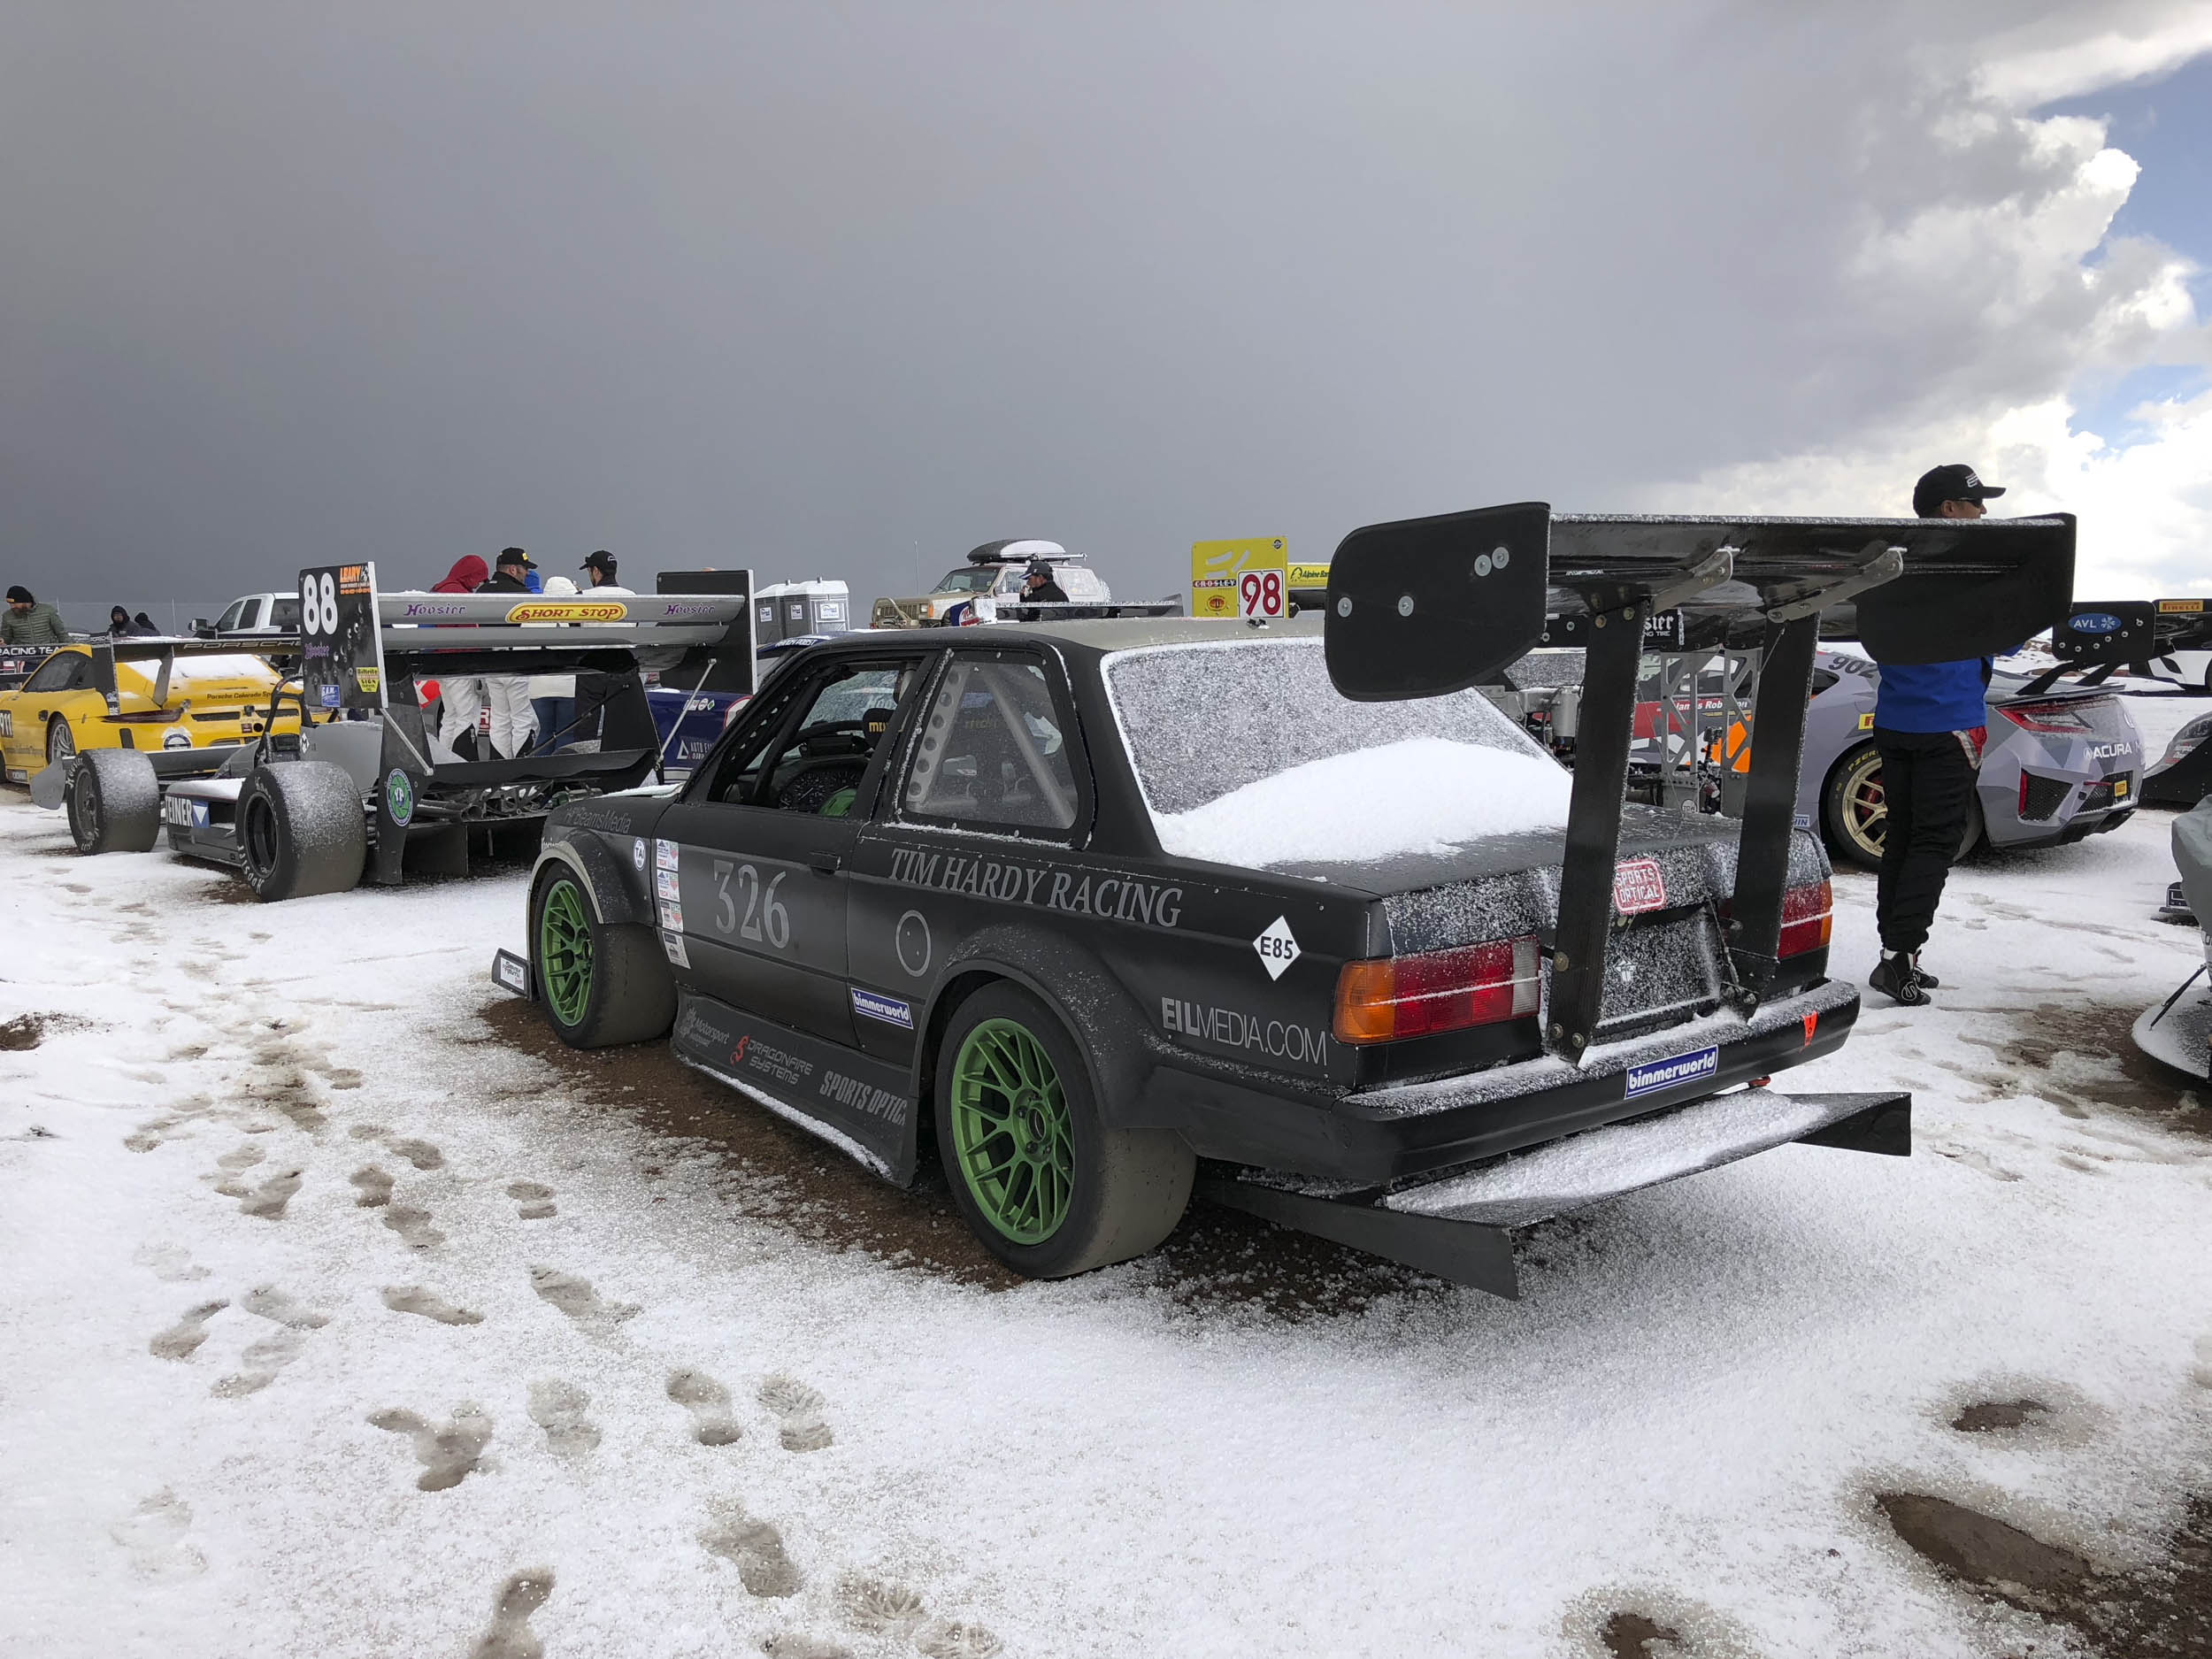 Snow at the top of Pikes Peak